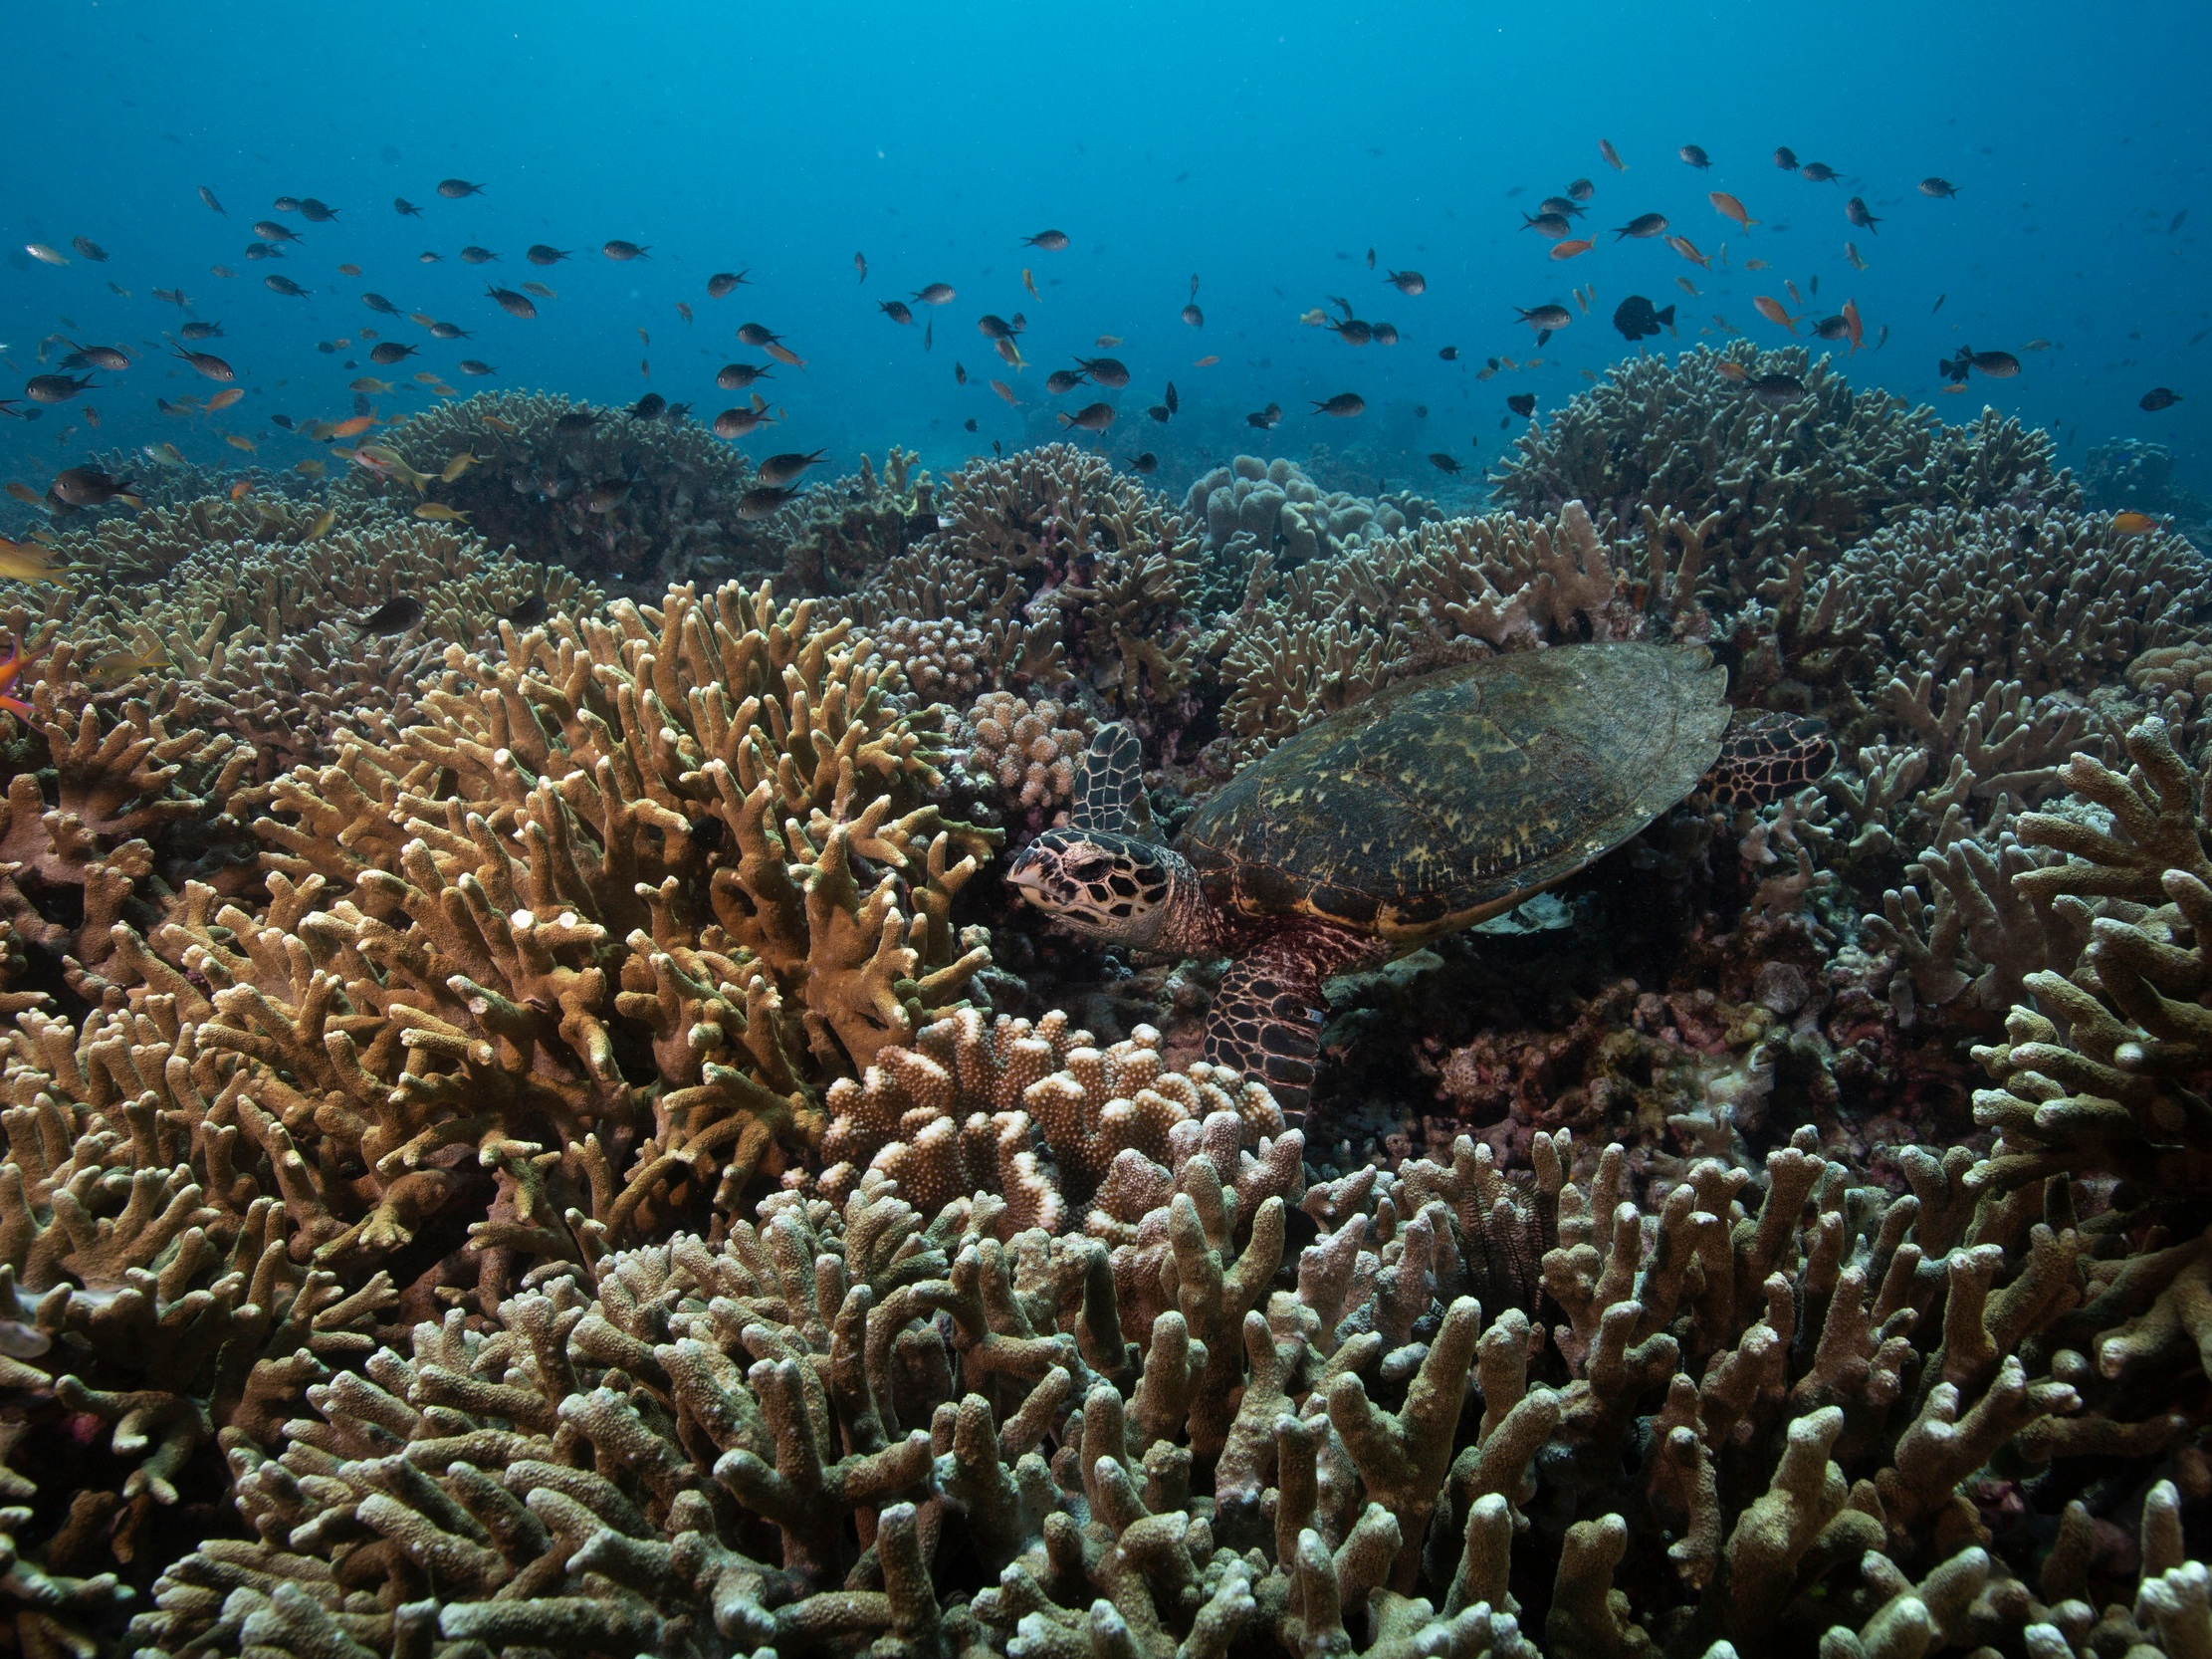 TURTLE IN THE PHILIPPINES CREDIT: RICK MISKIV / coral reef image bank